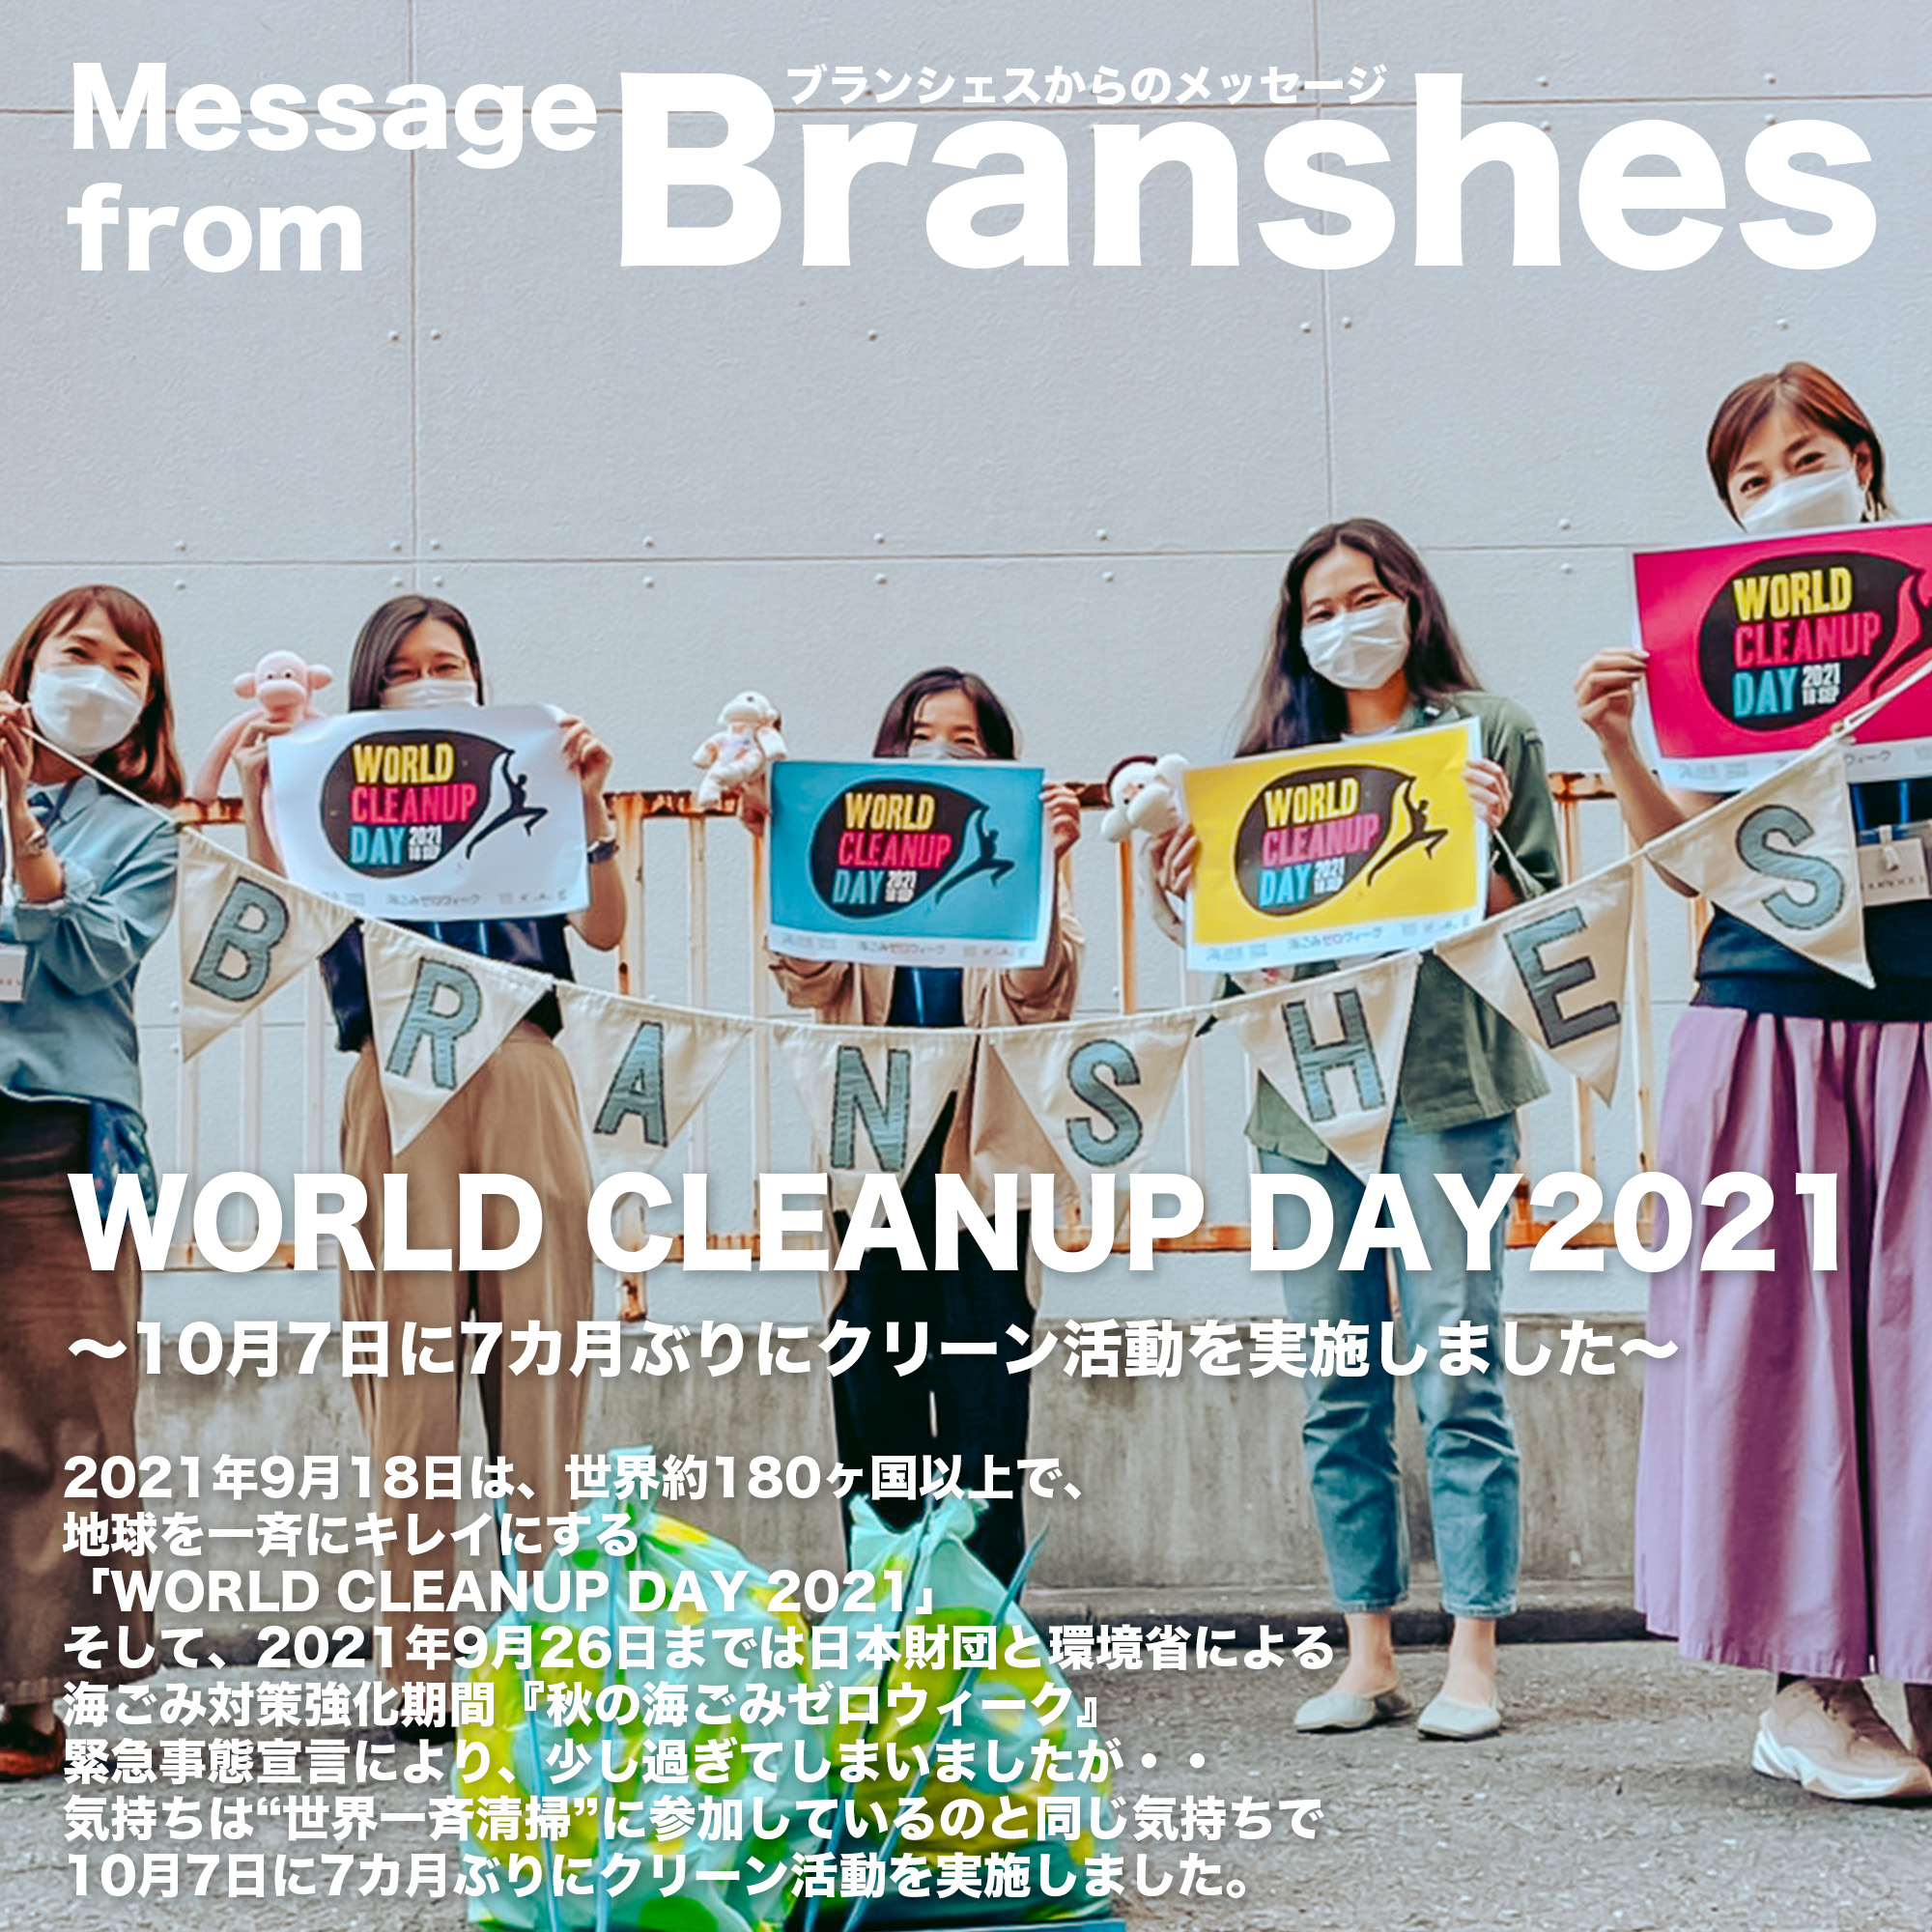 WORLD-CLEANUP-DAY2021